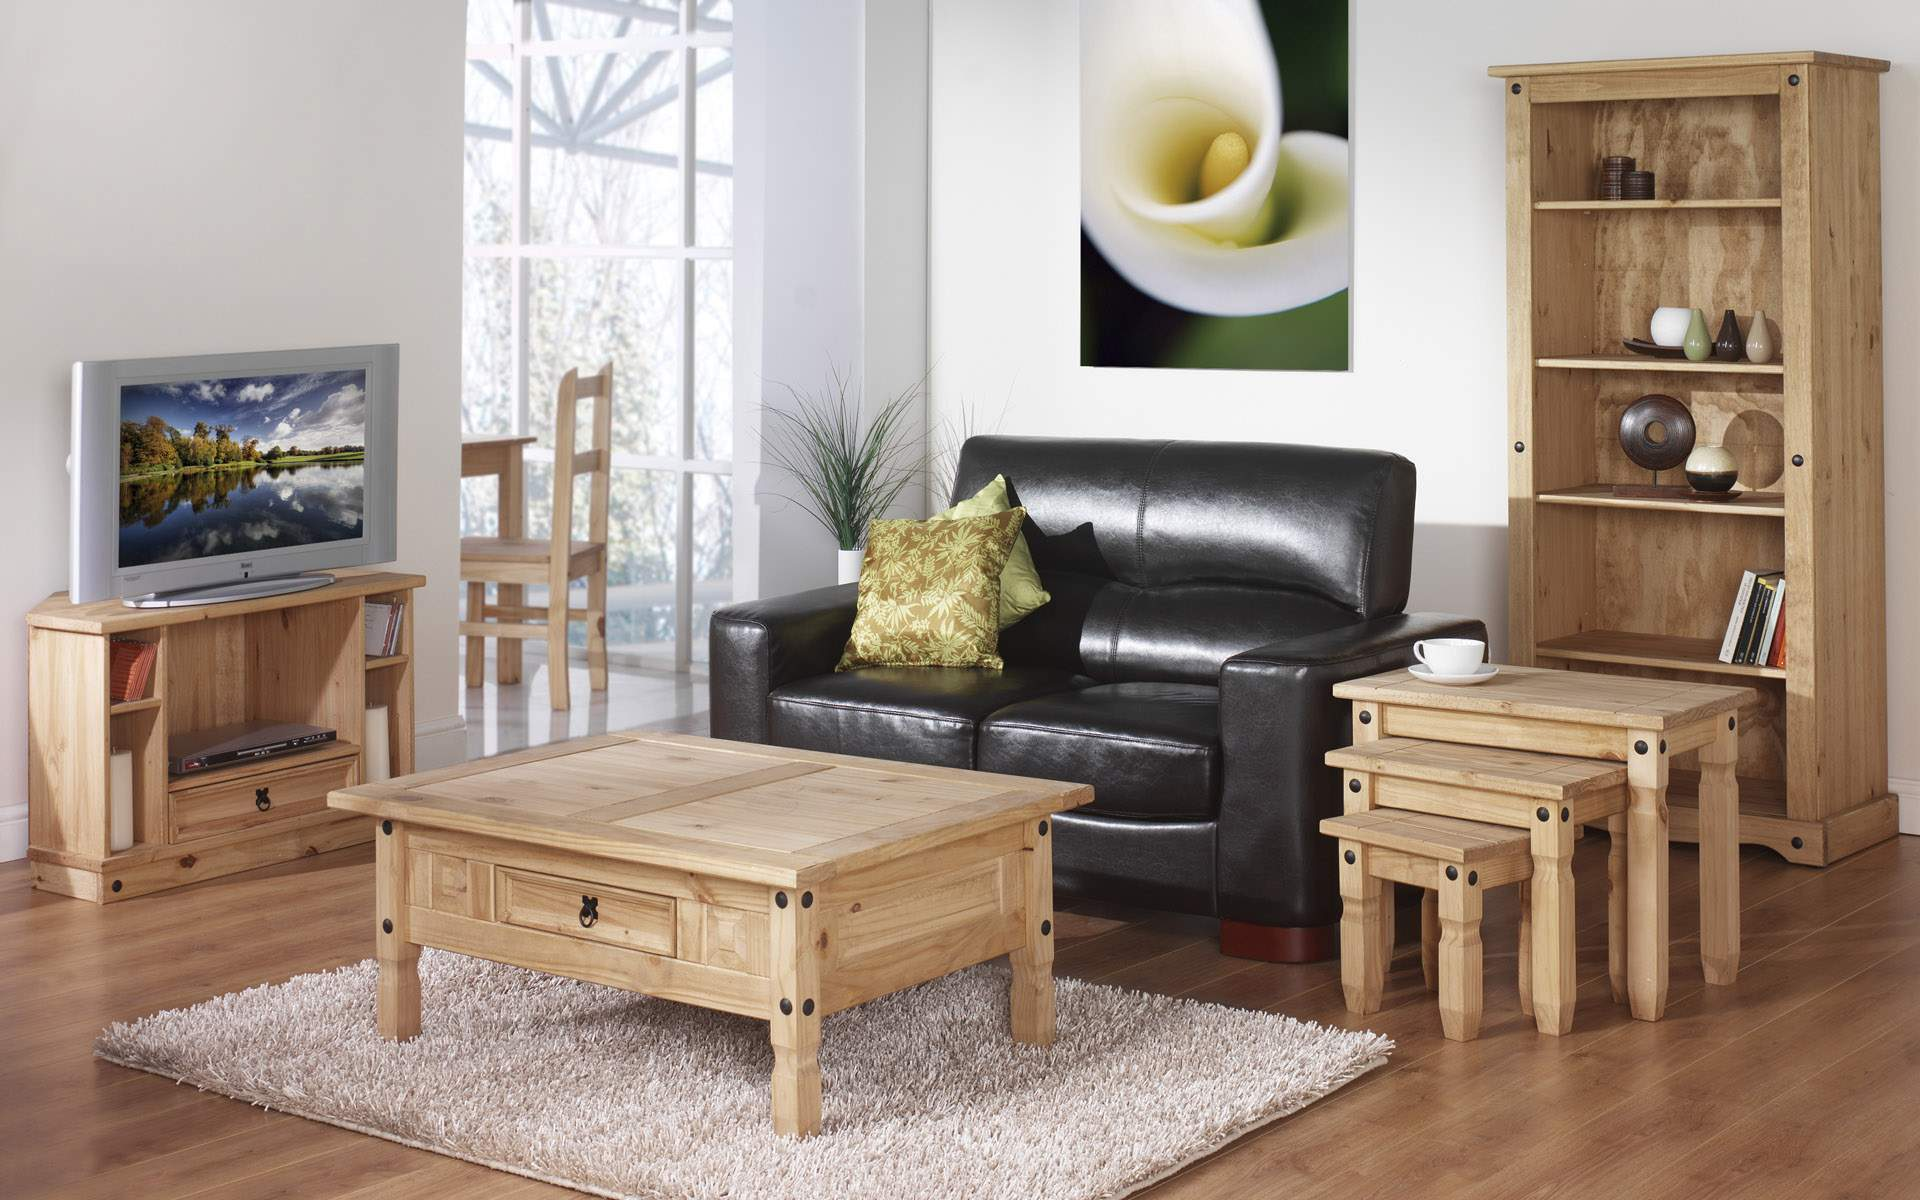 Fabulous front room furnishings for living room ideas with front room furnishings outlet